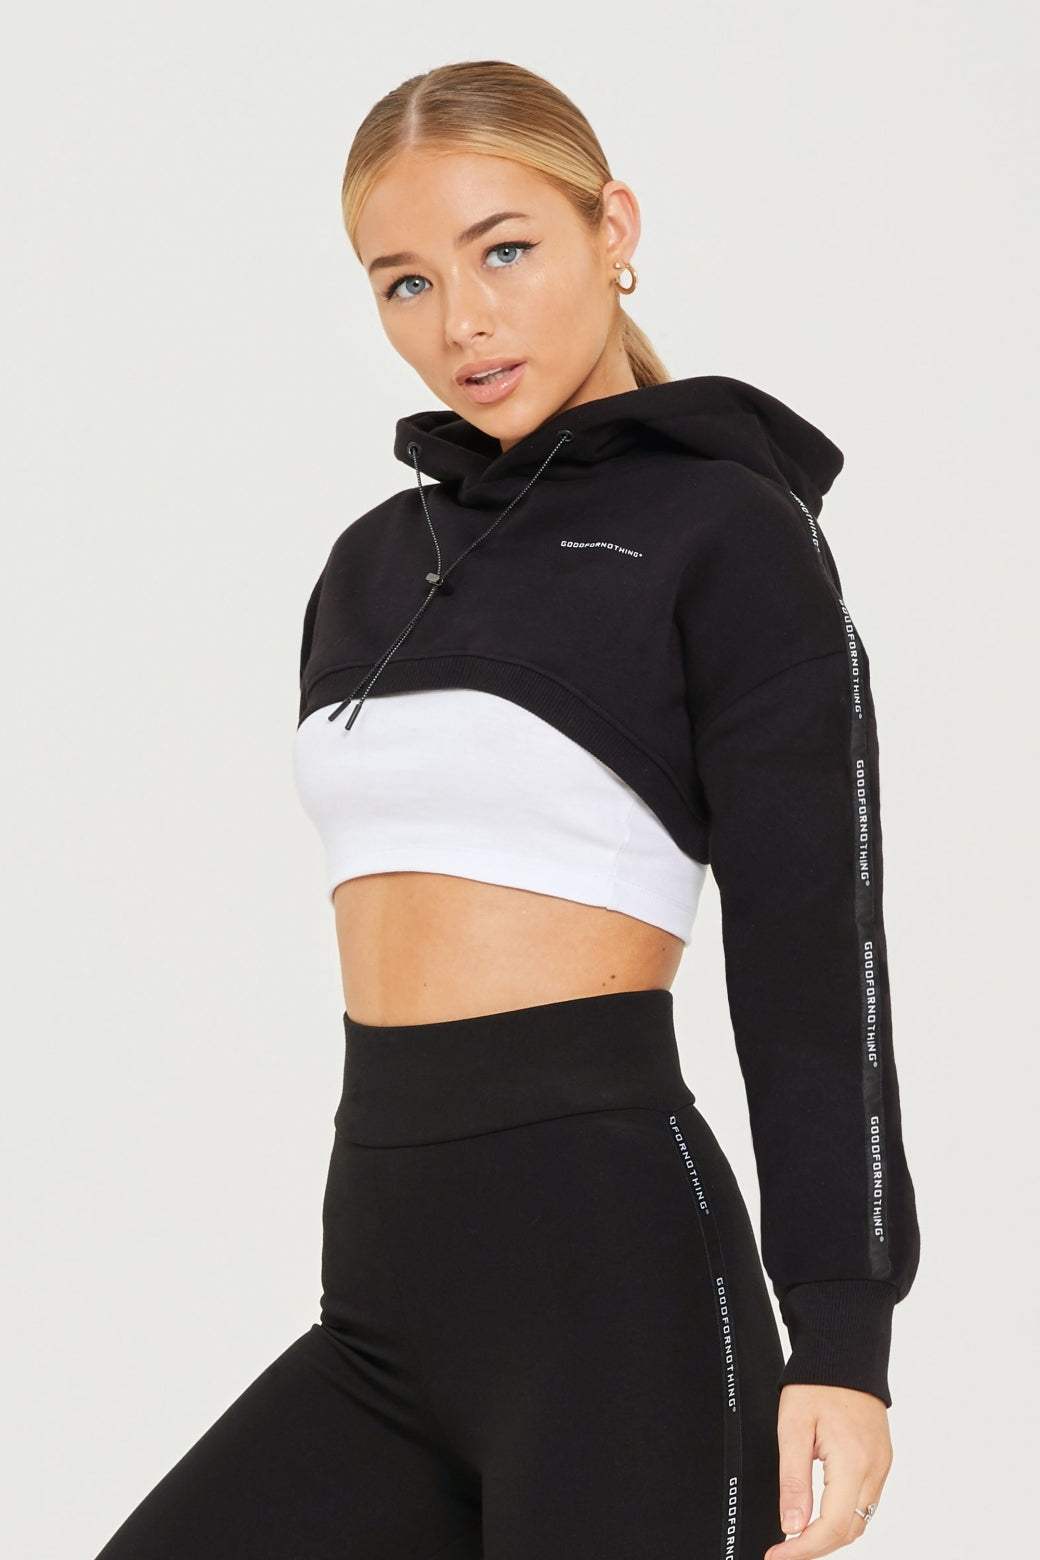 Super Cropped Black Future Hood